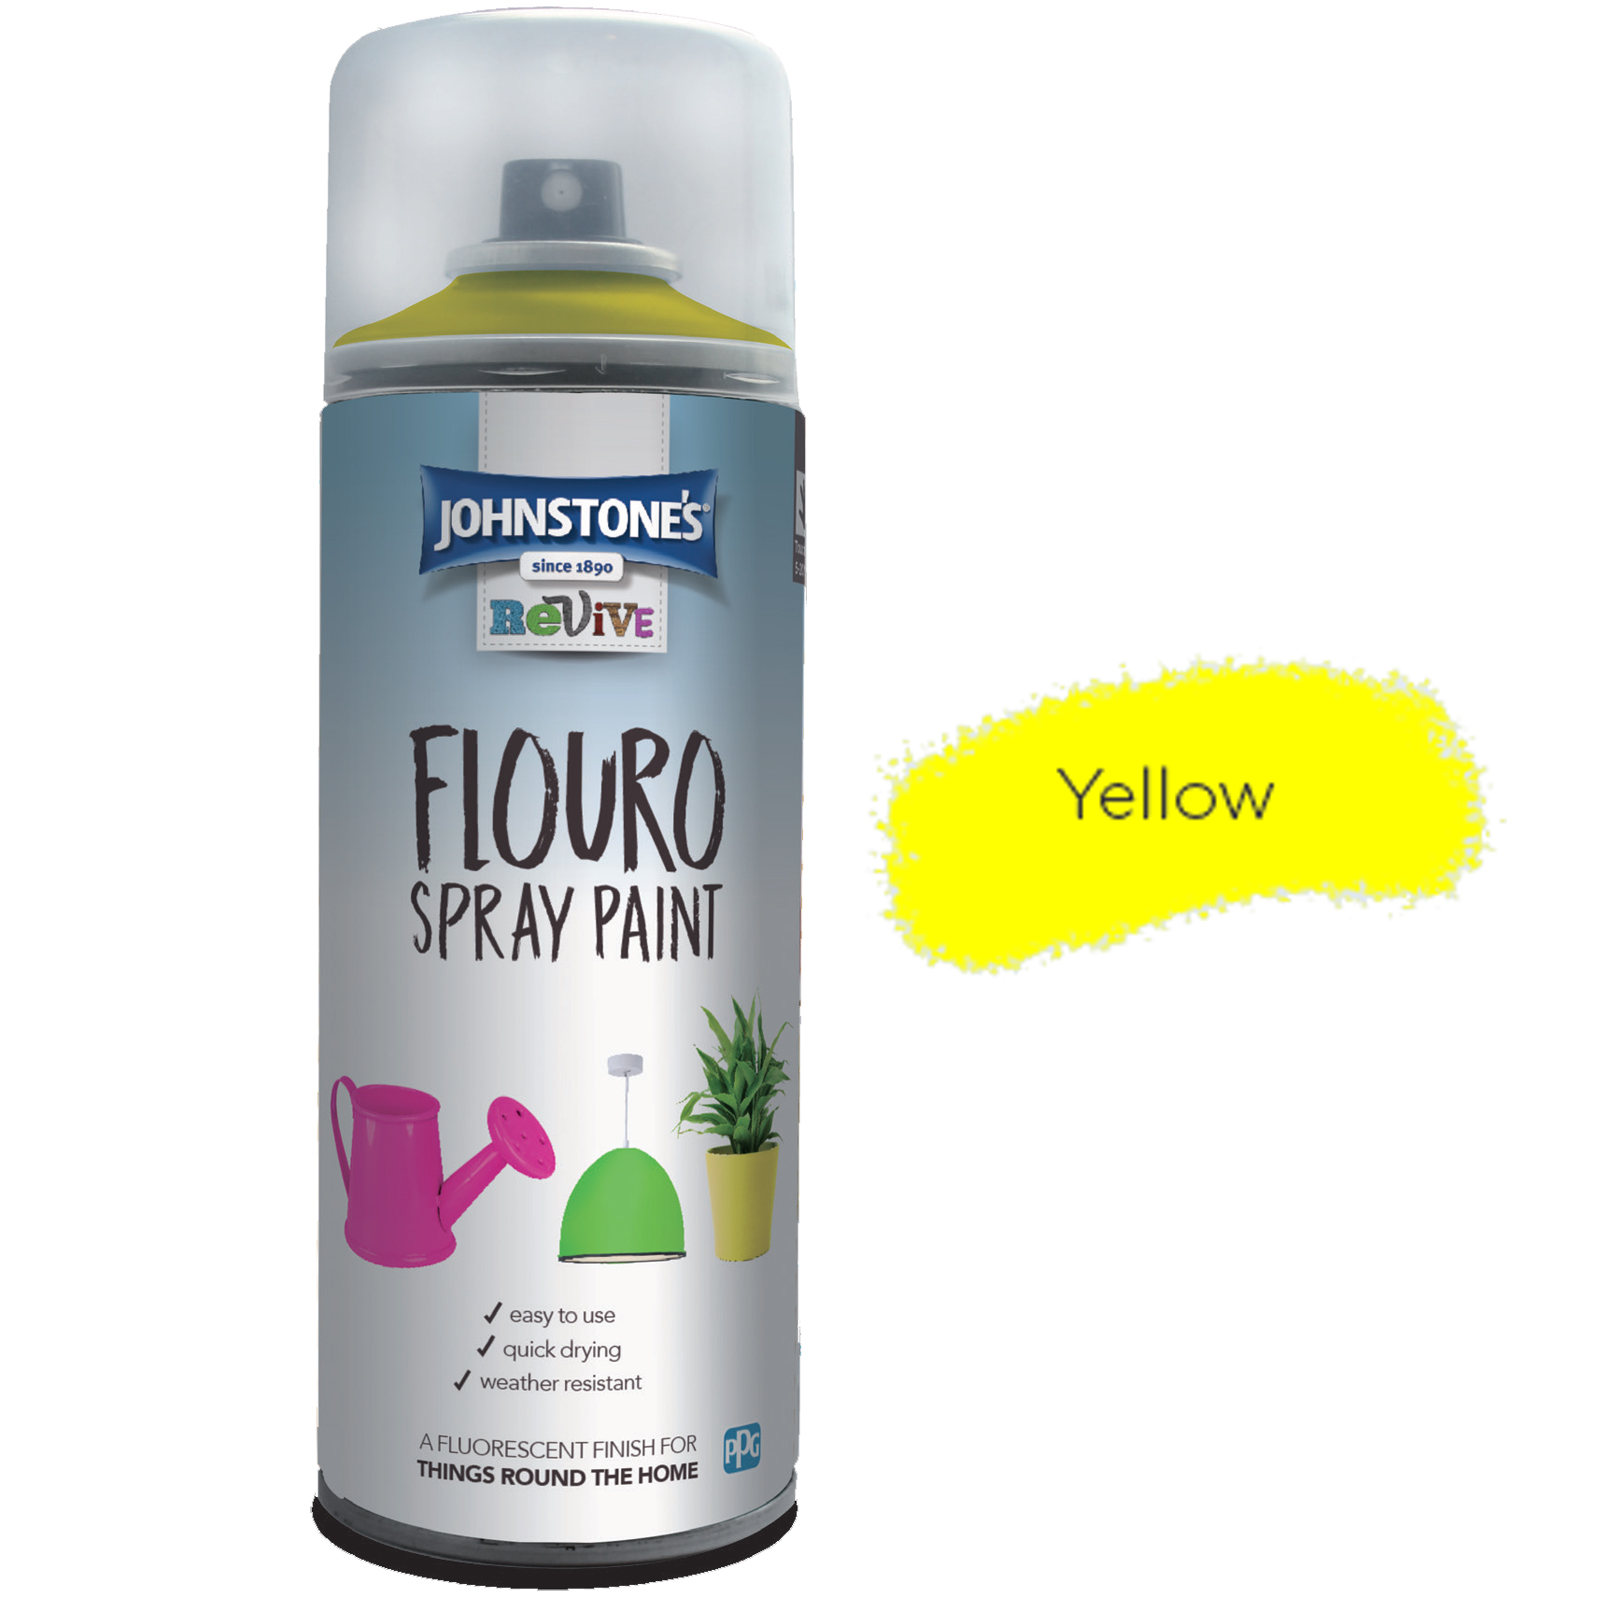 FLOURO SPRAY PAINT YELLOW